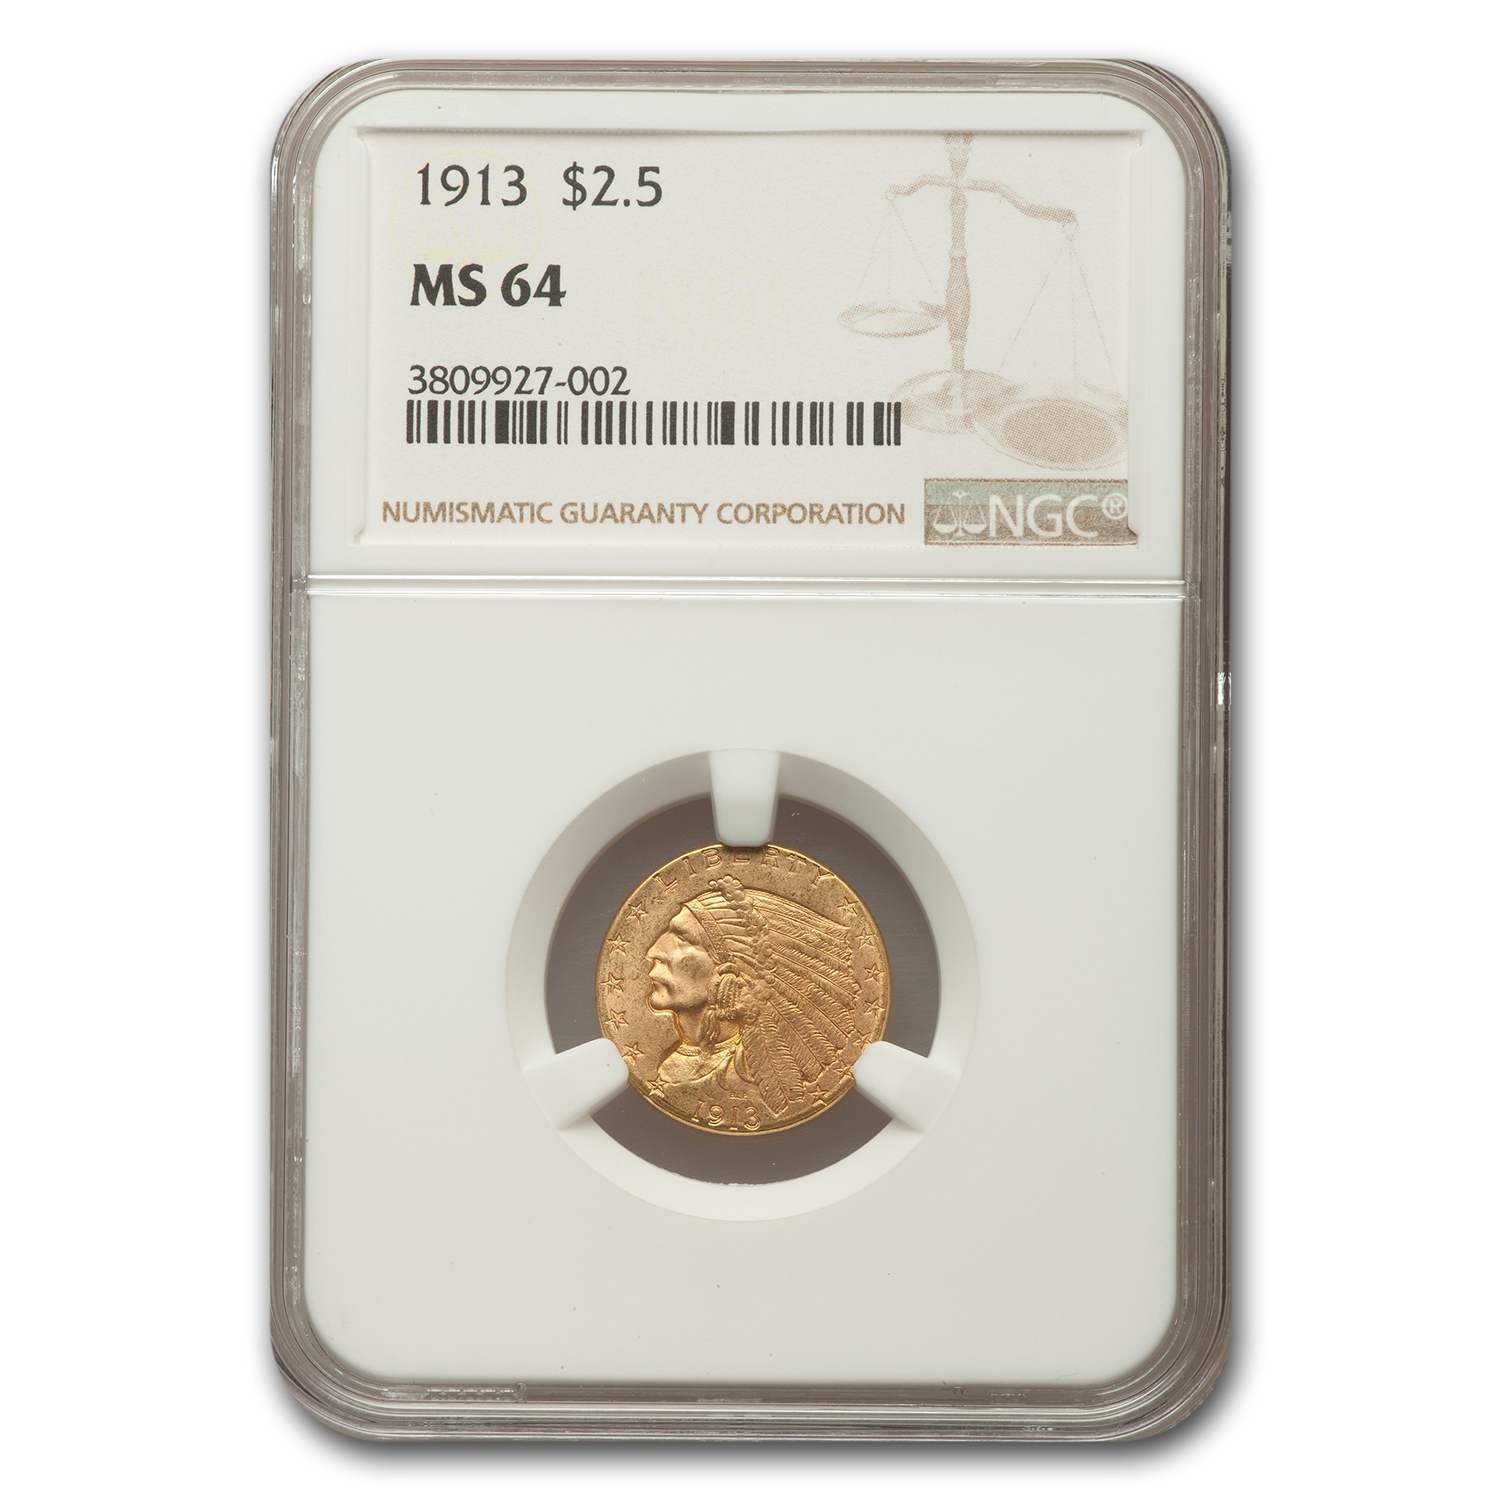 1913 $2.5 Indian Quarter Eagle MS-64 NGC